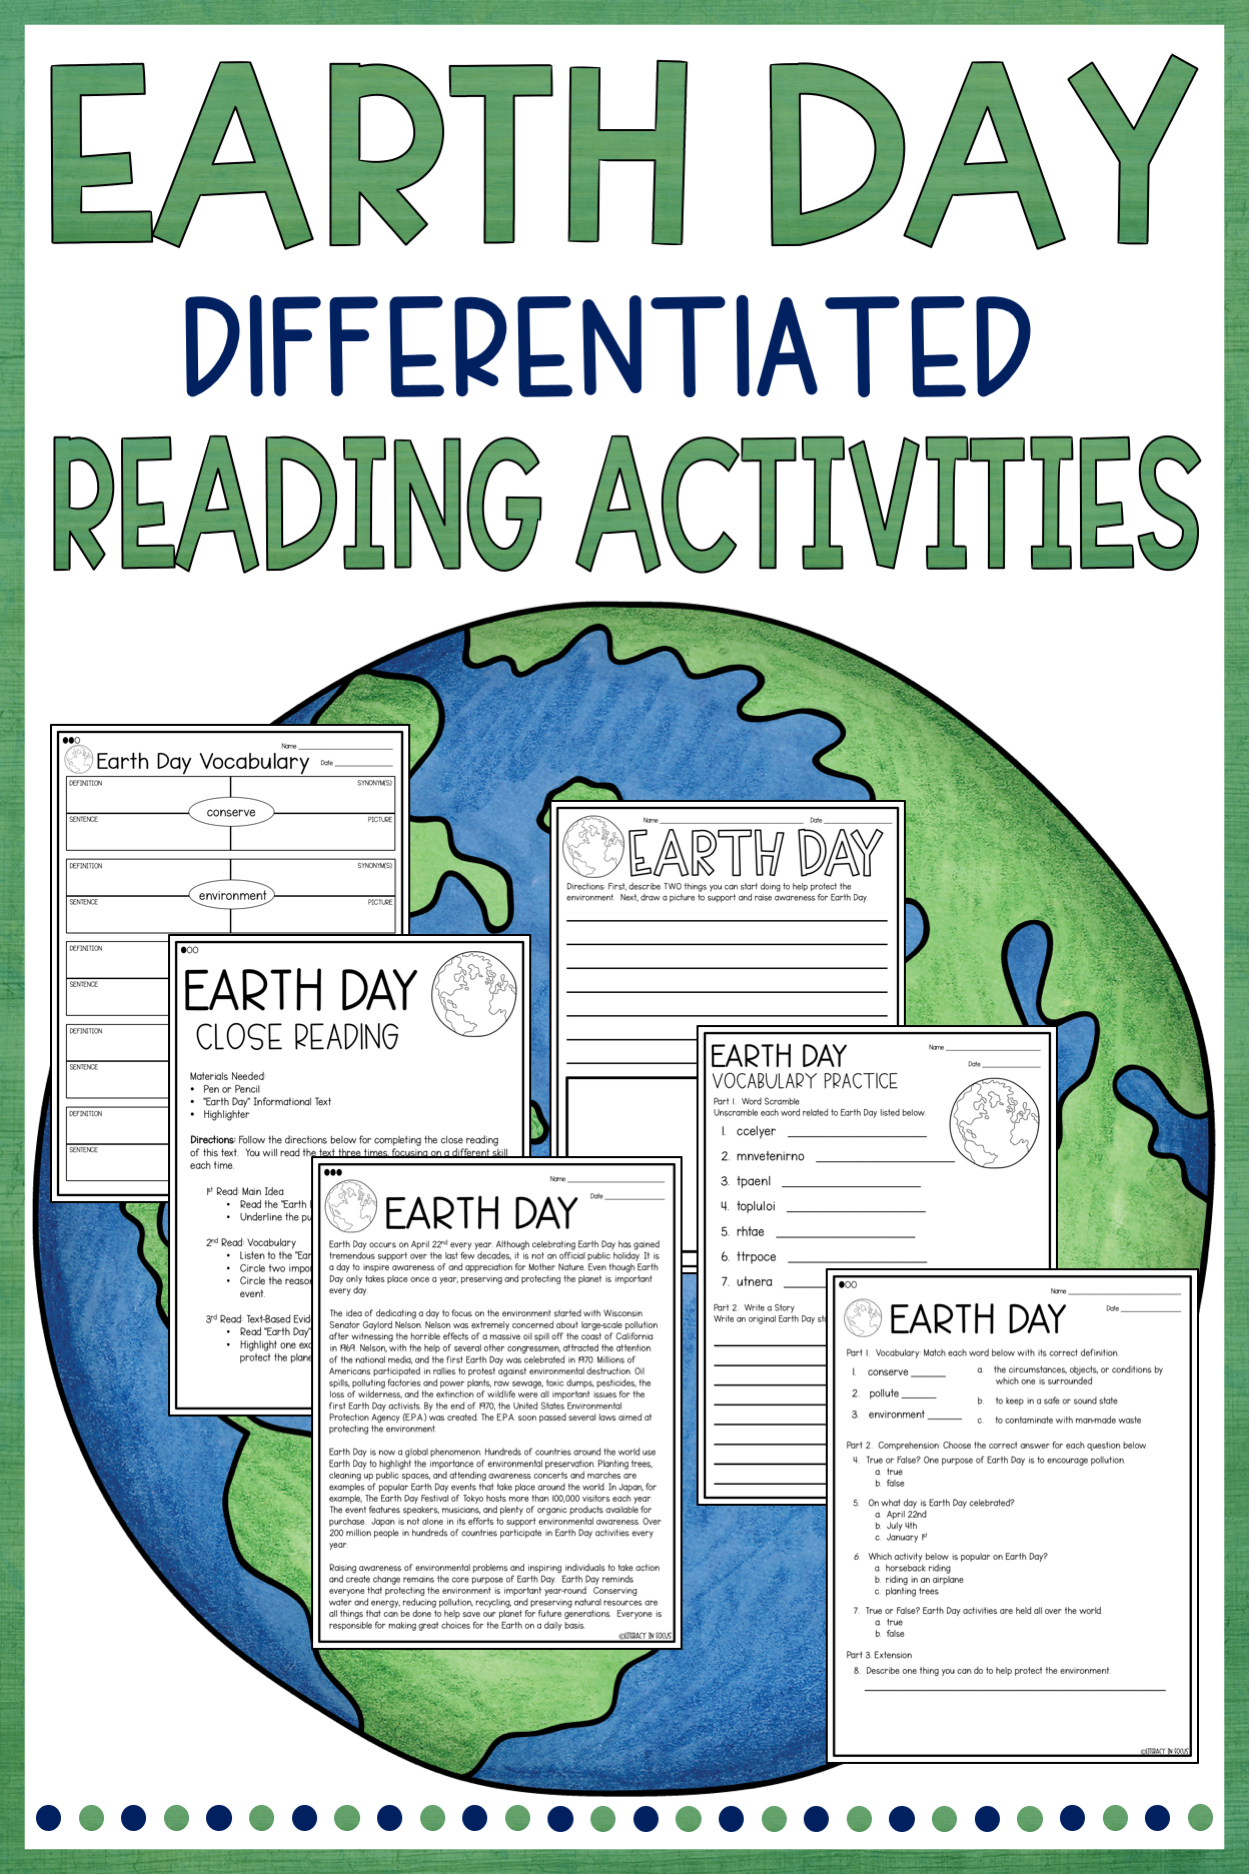 small resolution of Earth Day Worksheet Middle School   Printable Worksheets and Activities for  Teachers